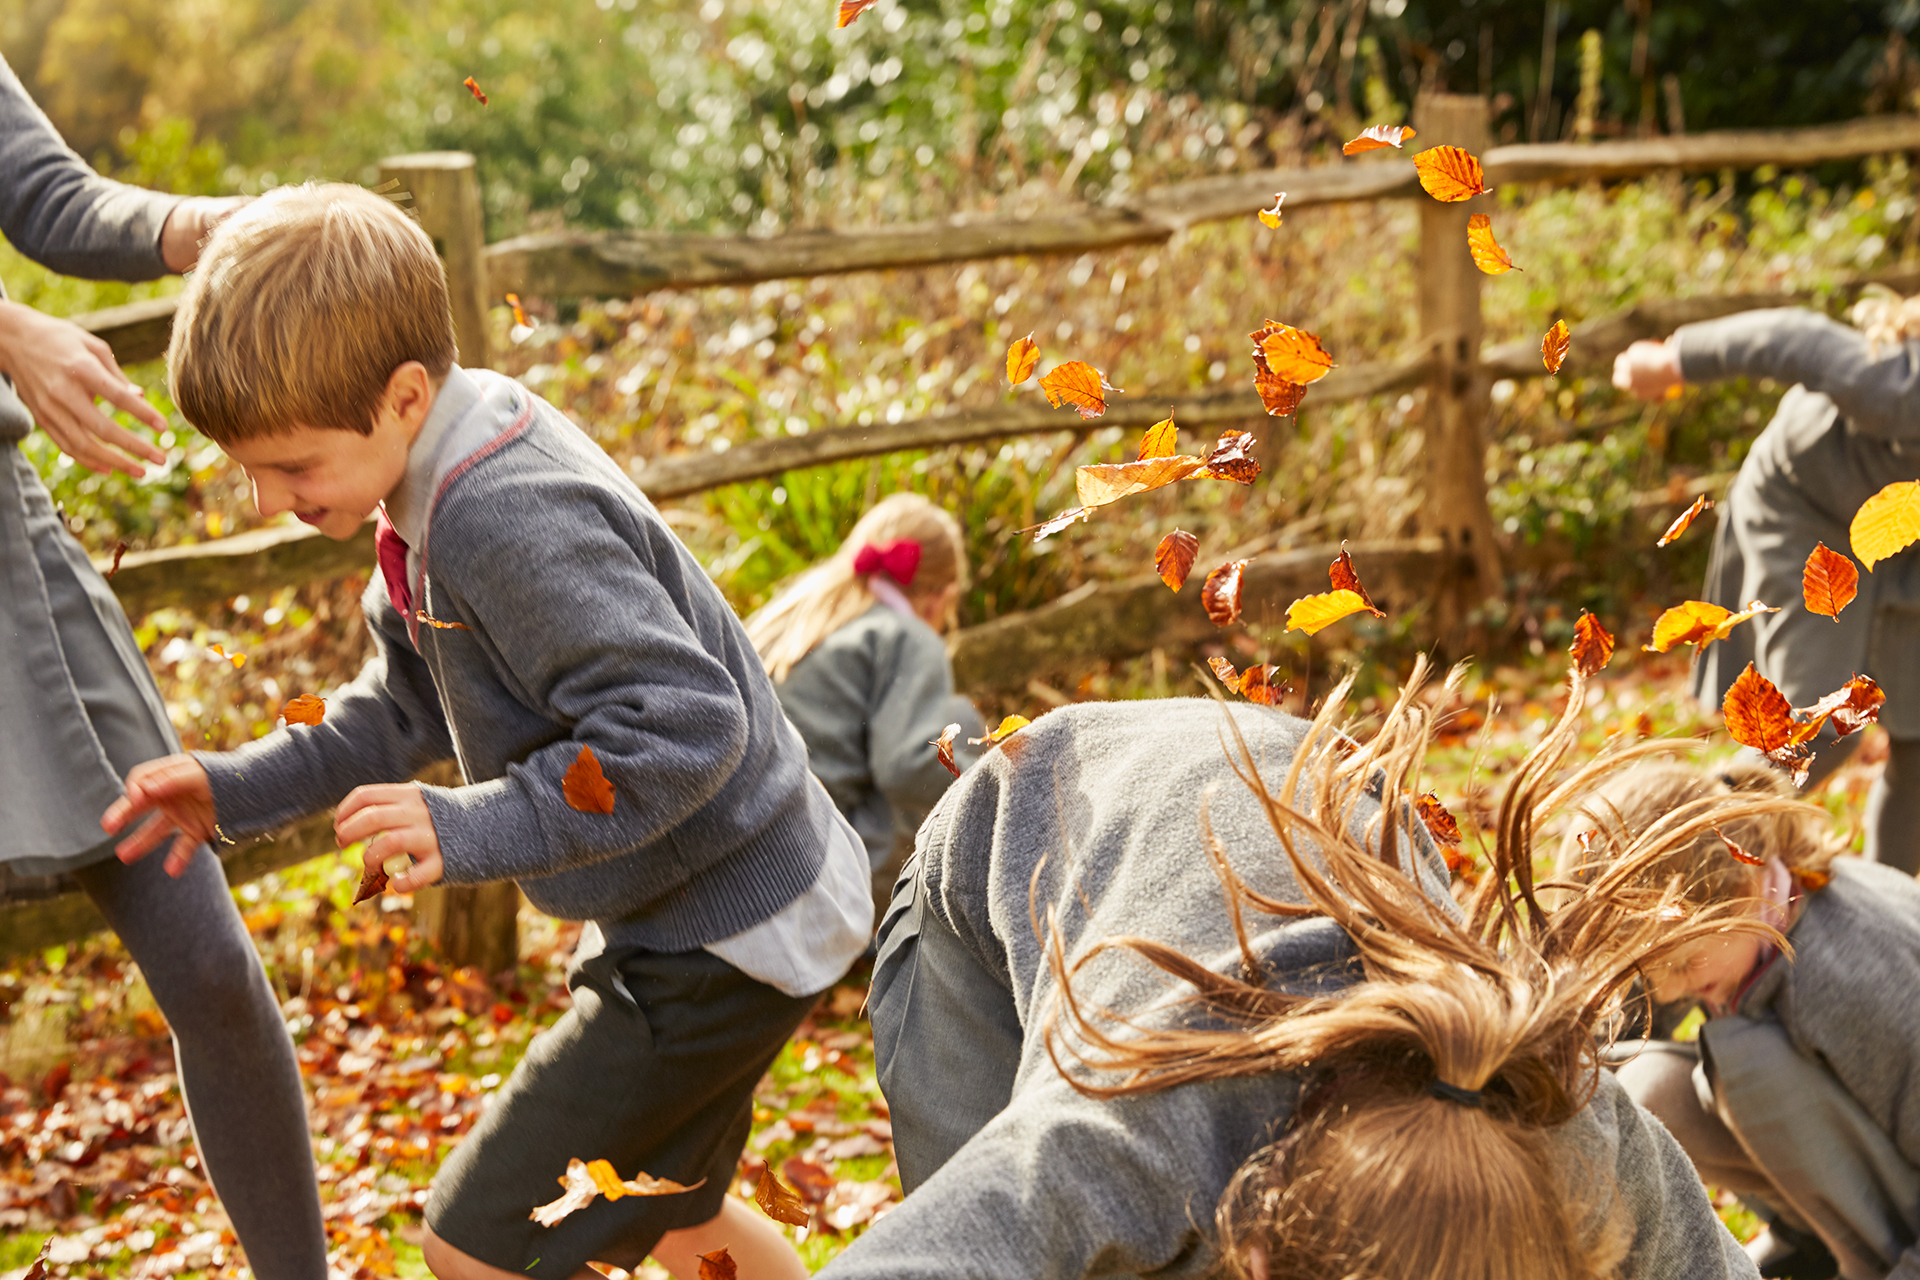 School children throwing autumn leaves